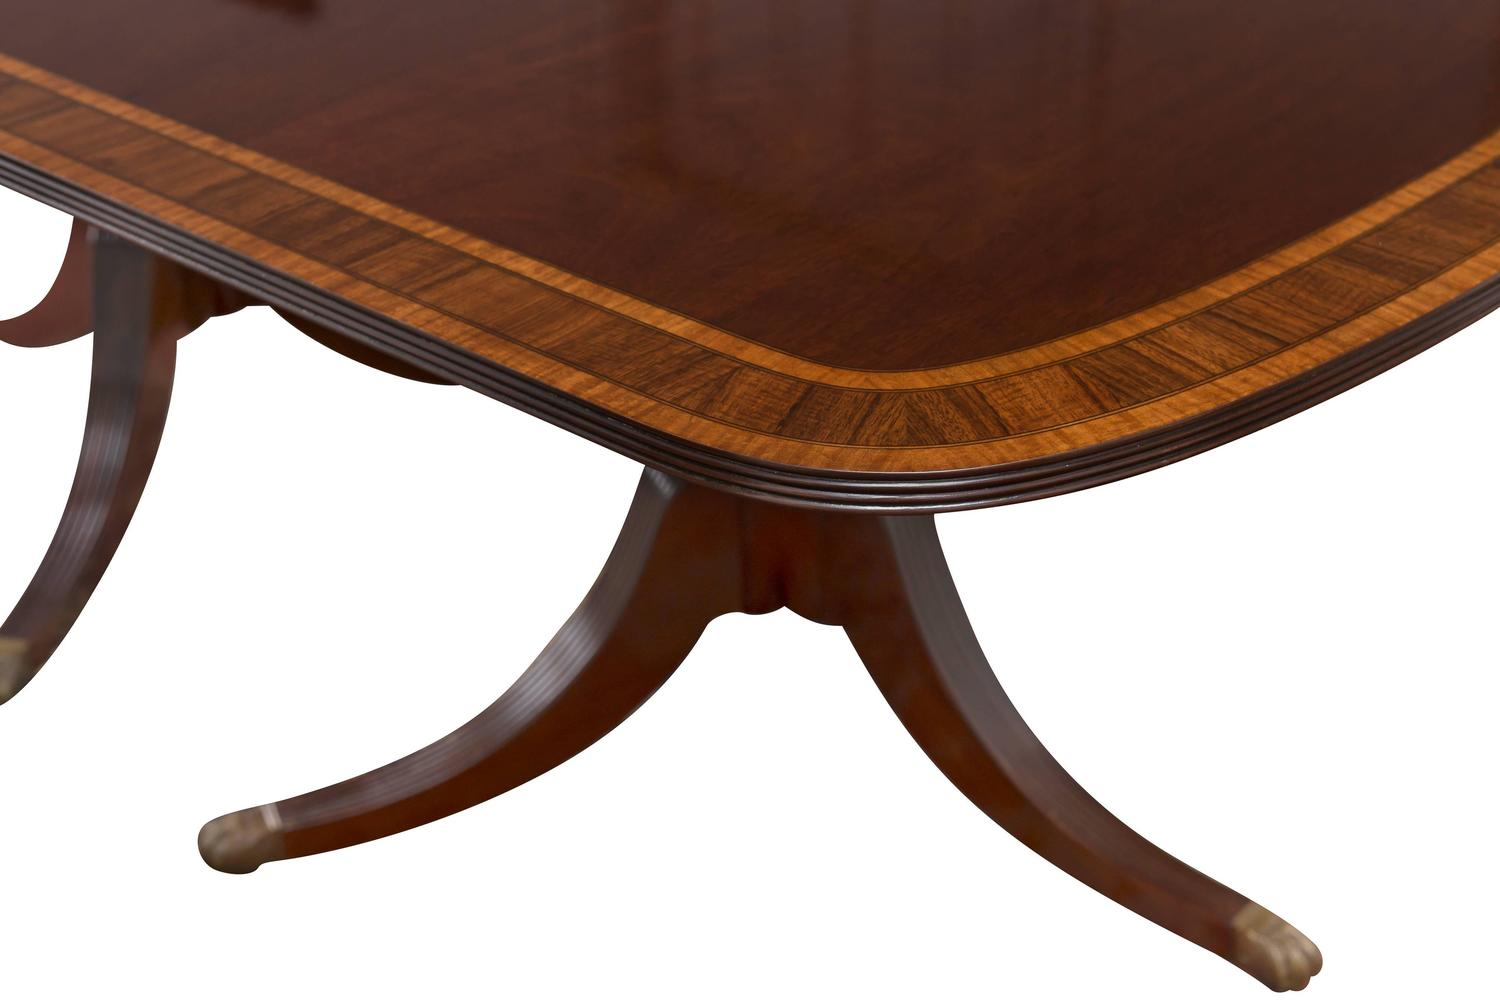 sheraton style double pedestal mahogany dining table at 1stdibs